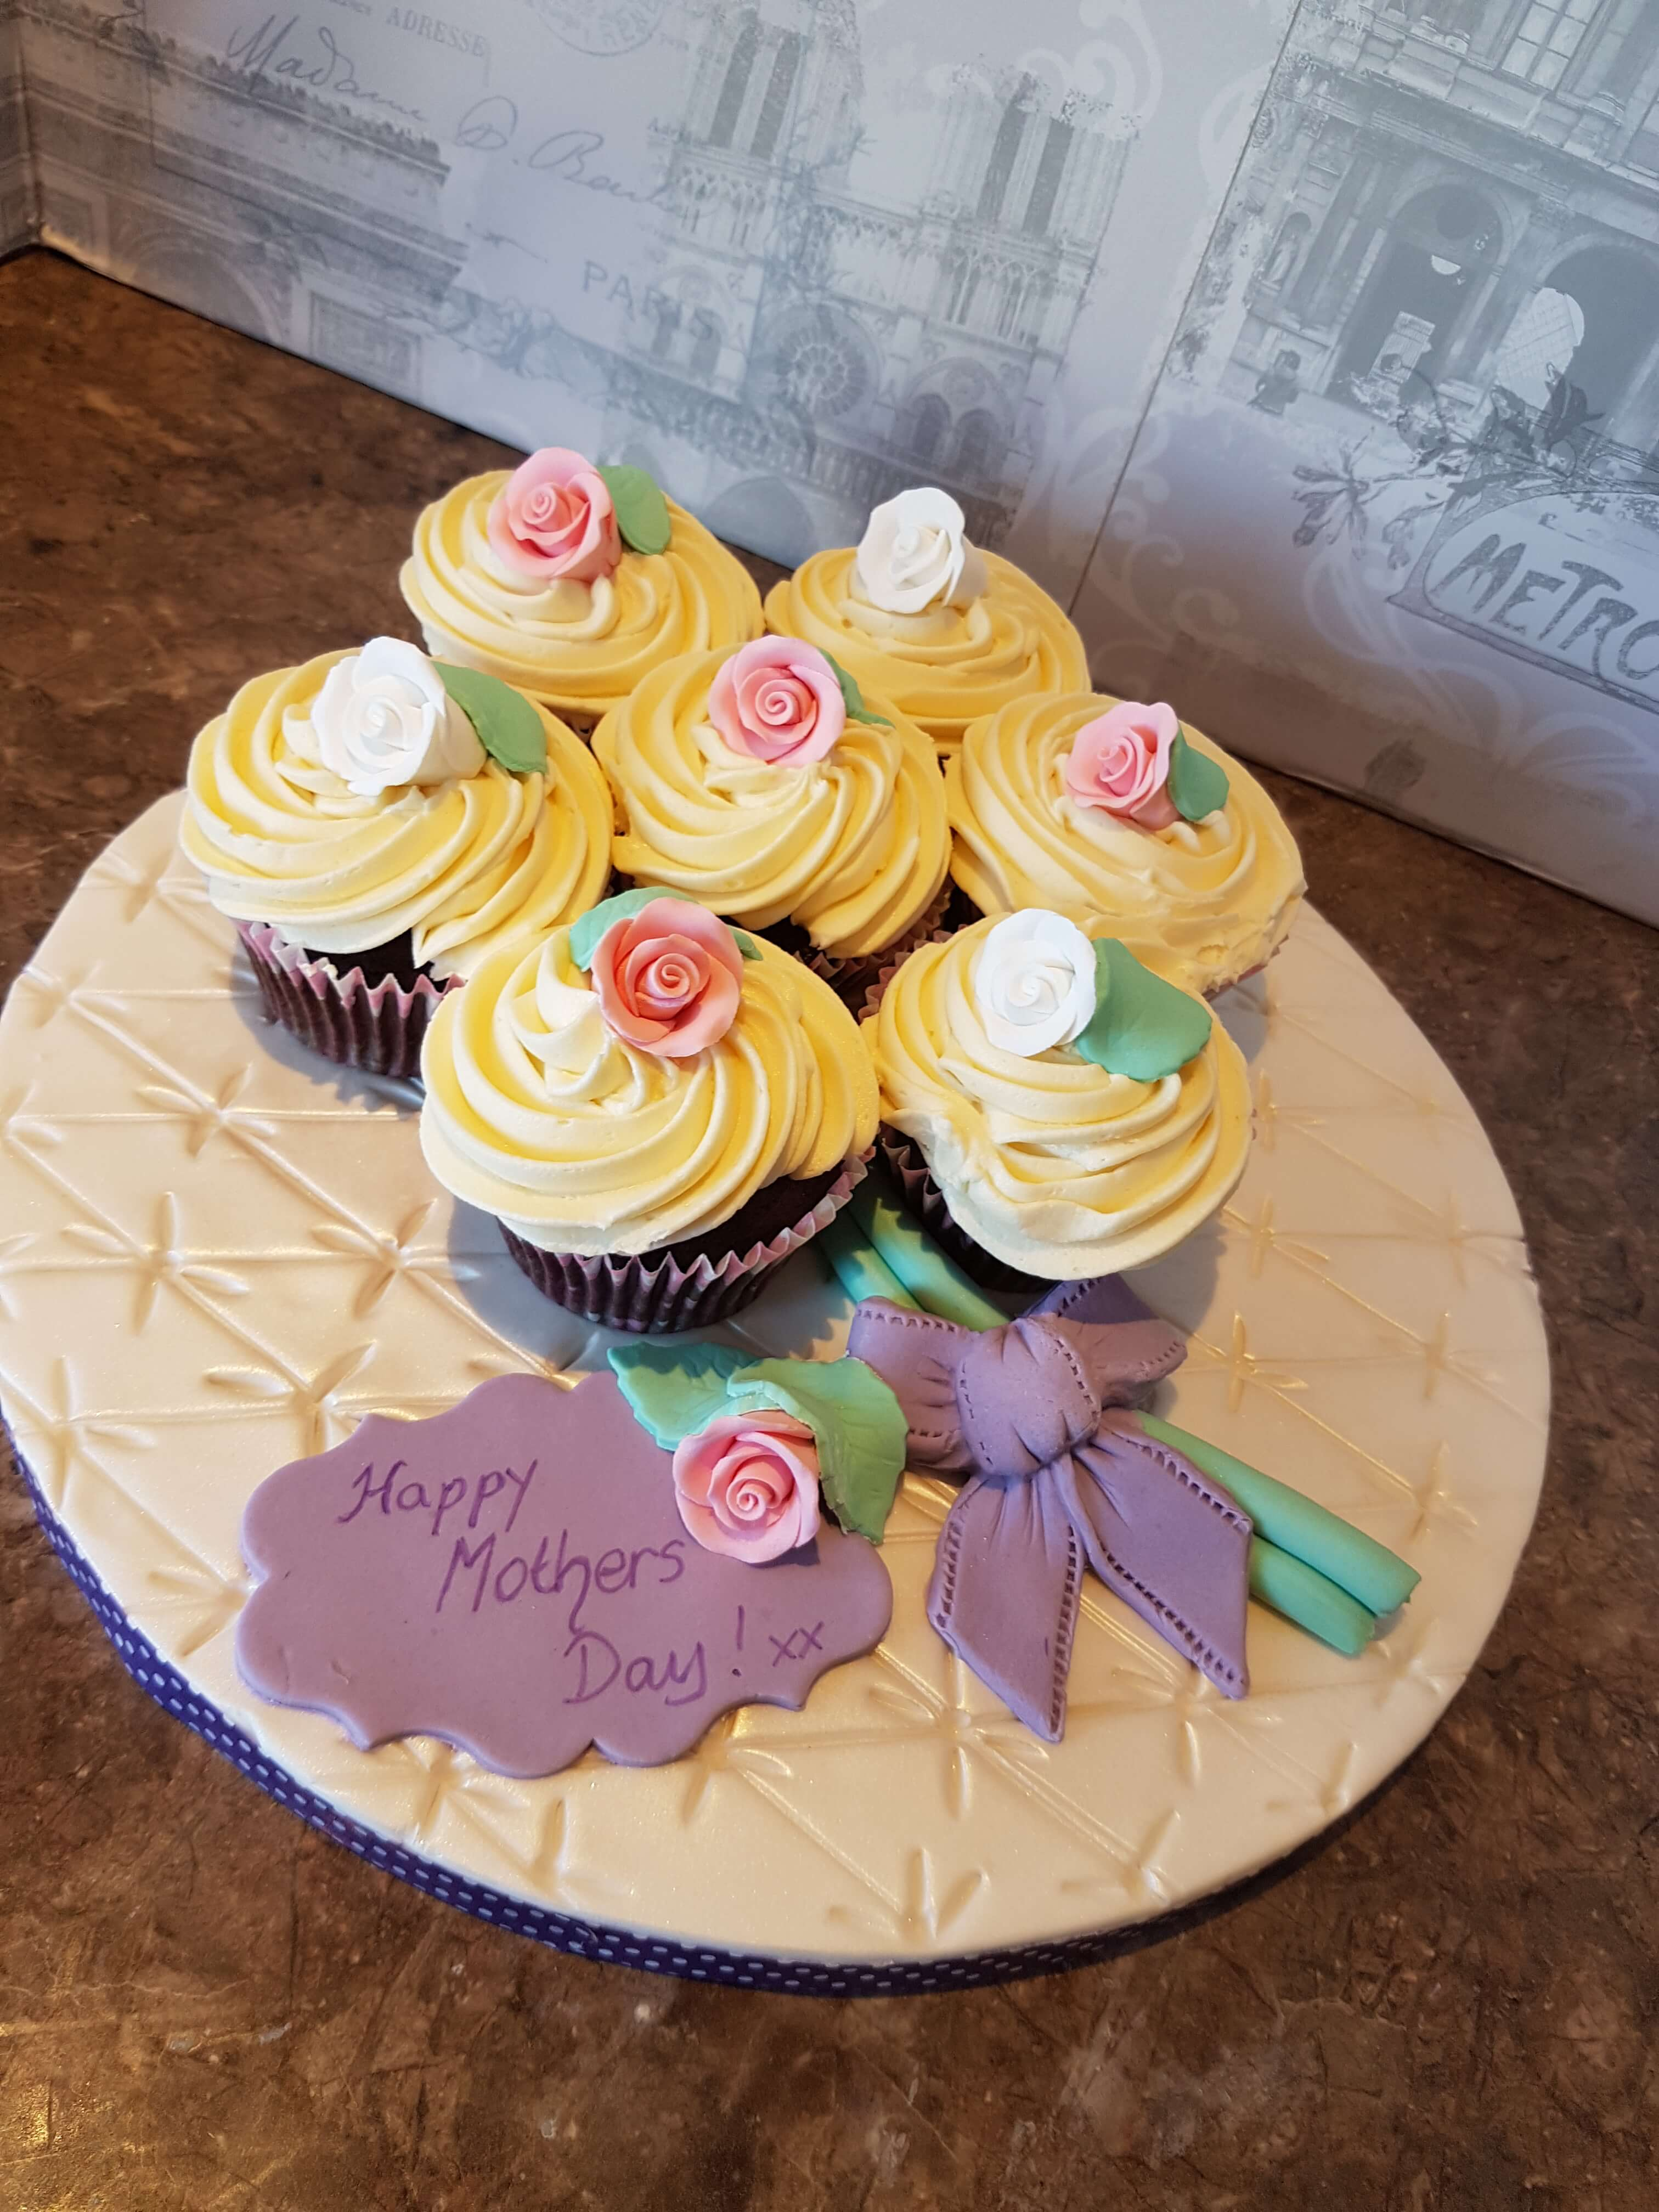 Lush Happy Mother's Day Cupcakes